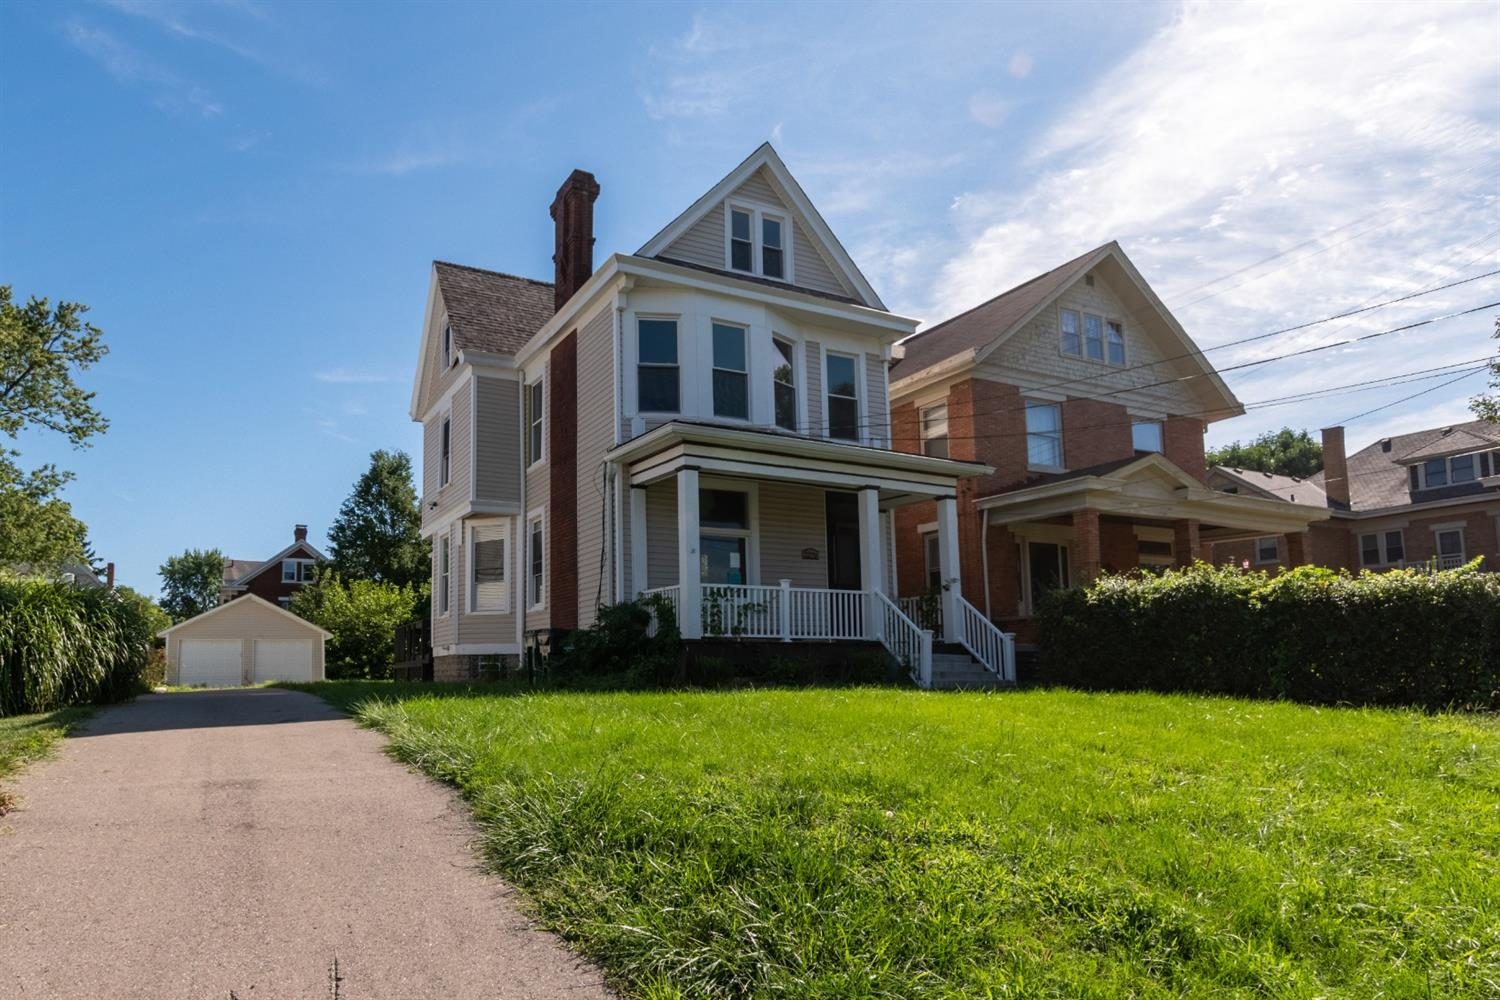 Property for sale at 2270 Adams Avenue, Norwood,  Ohio 45212